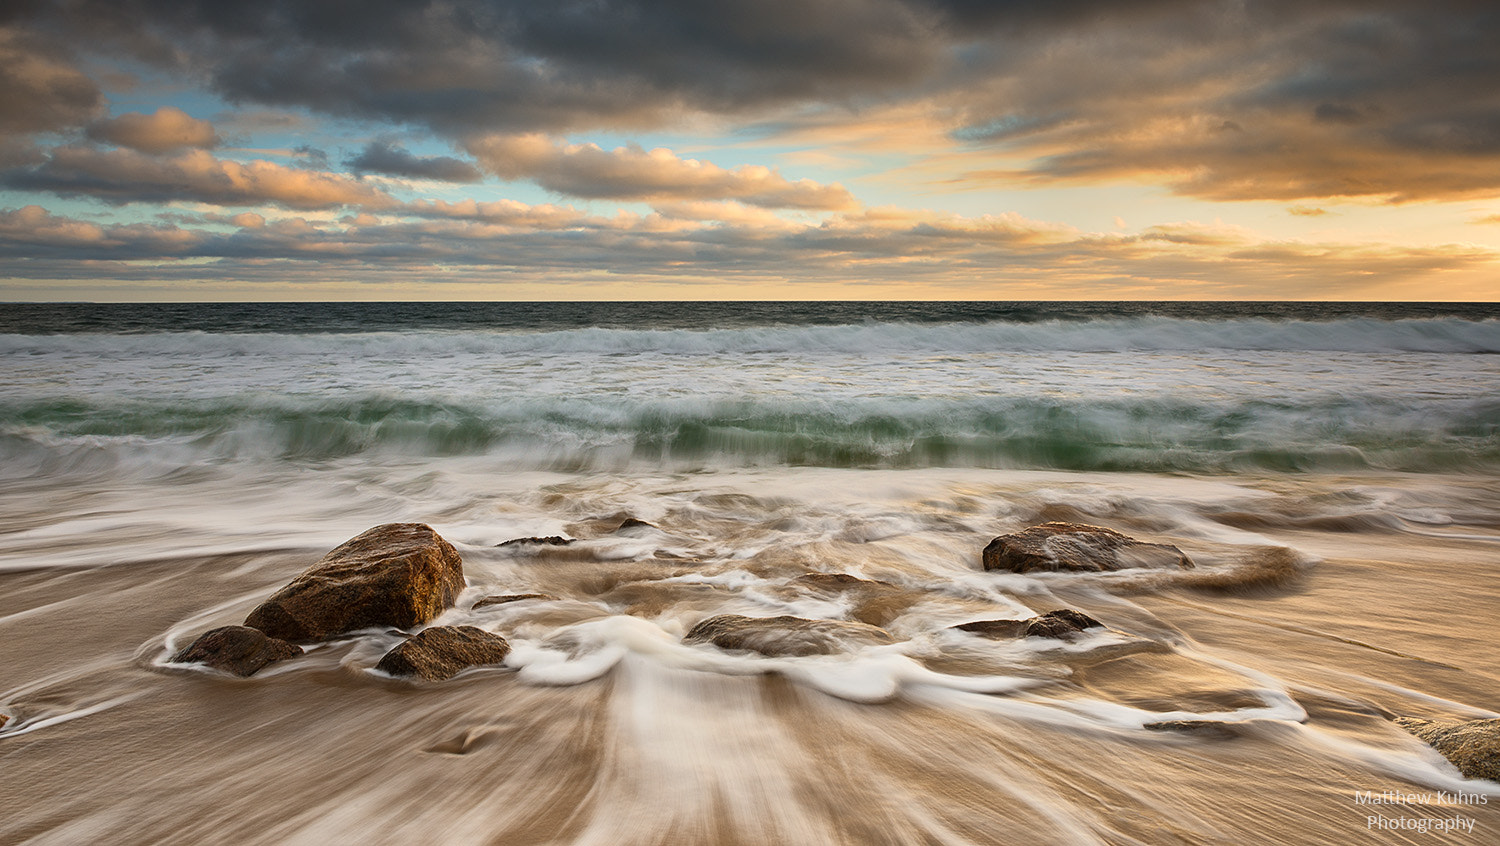 Photograph Misquamicut Beach by Matthew Kuhns on 500px